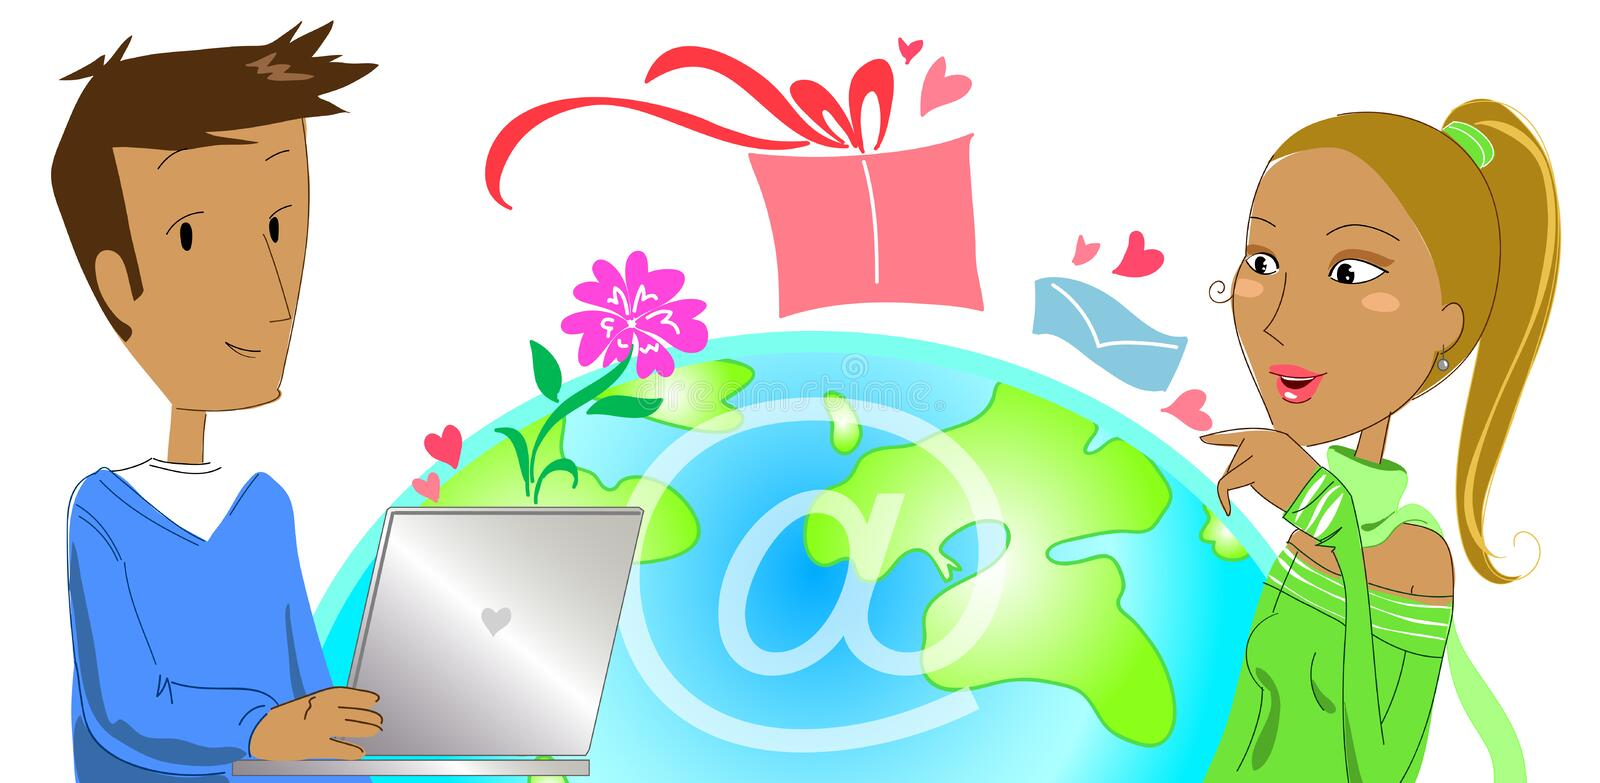 Download Buying A Gift From E-commerce Stock Images - Image: 10148654